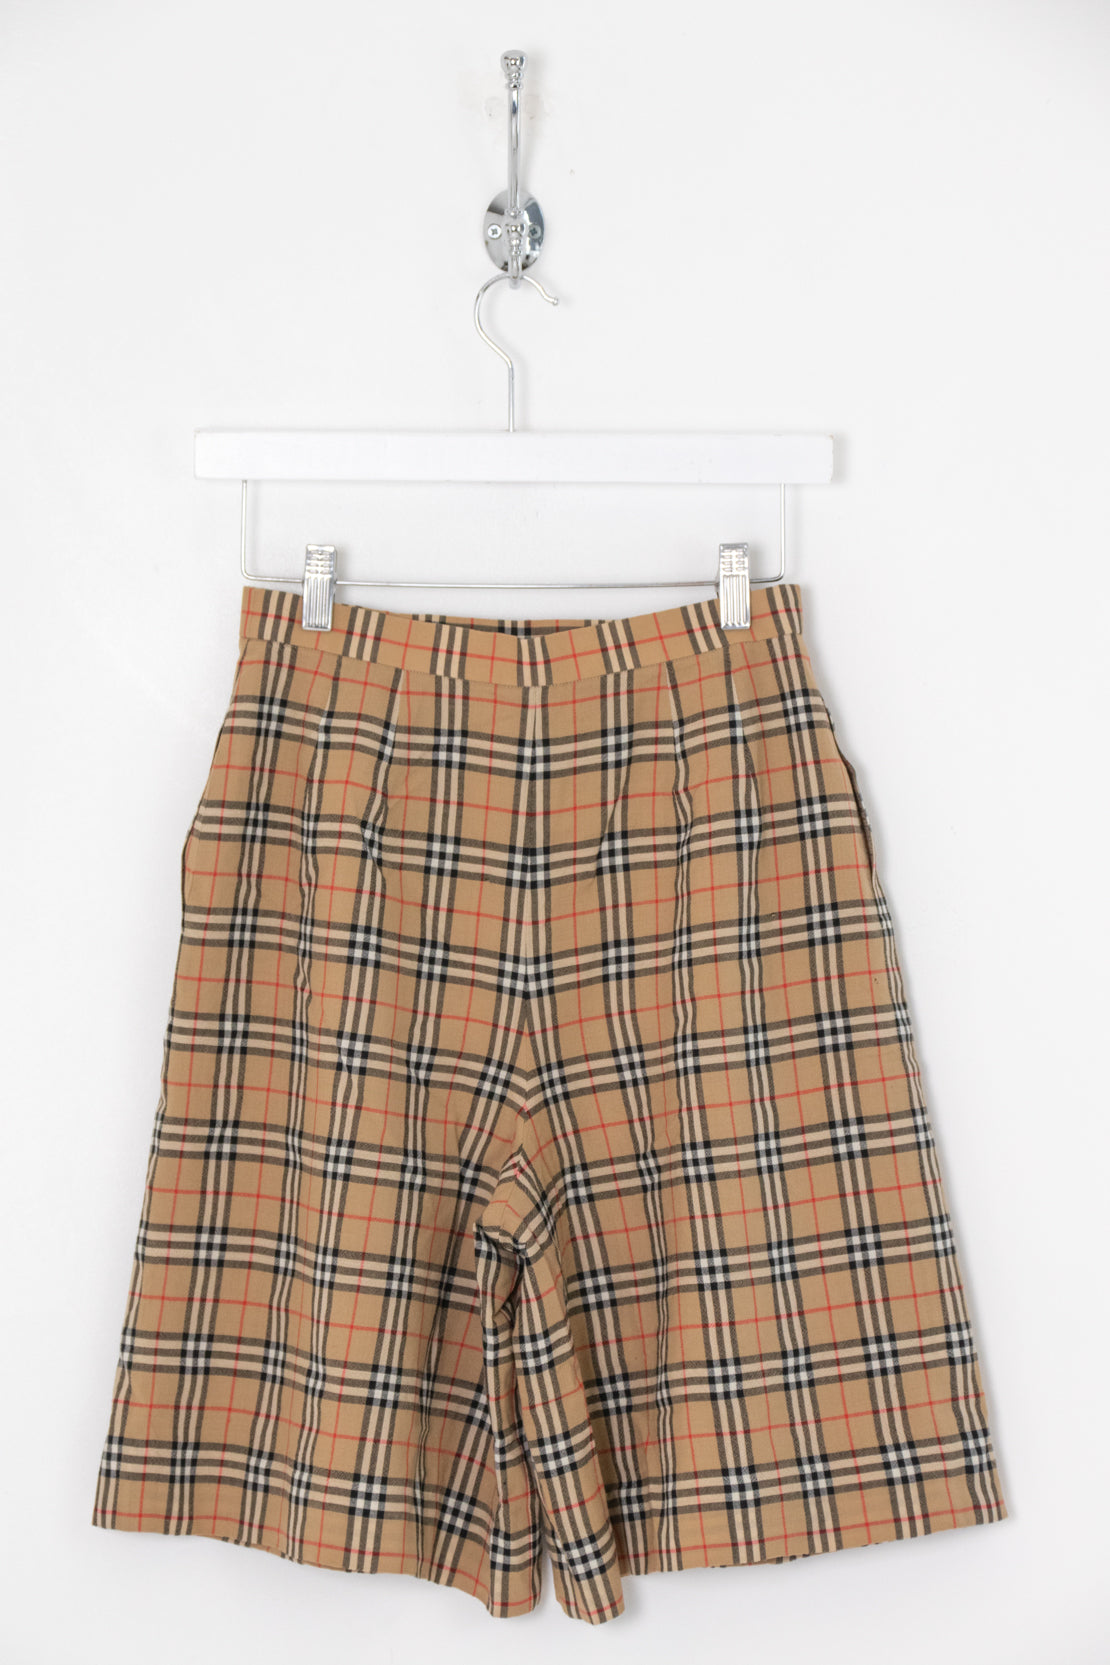 Women's Burberry High Waisted Shorts (M)